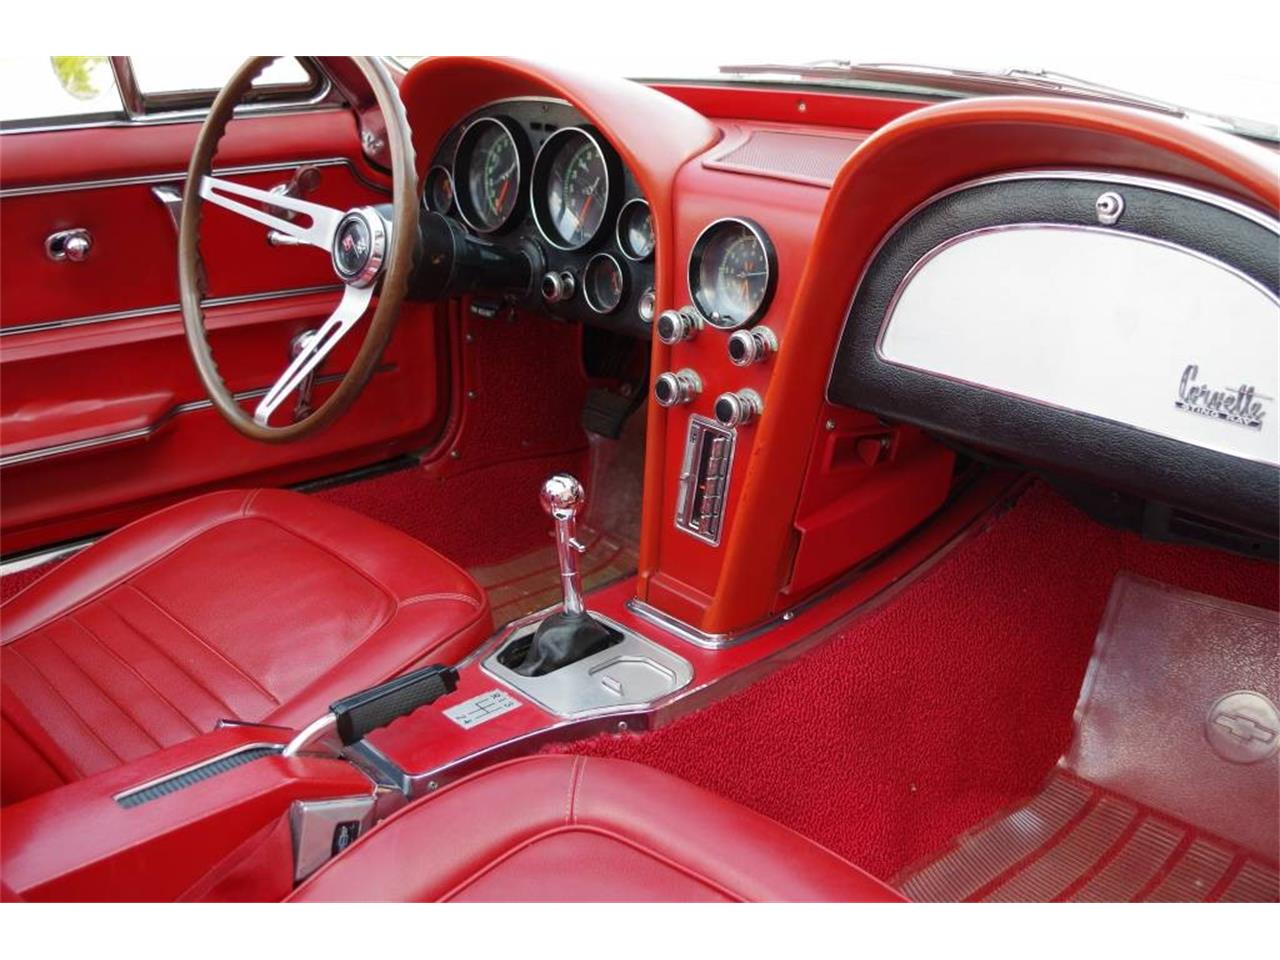 Large Picture of 1967 Chevrolet Corvette located in Missouri - $129,995.00 Offered by Vintage Vettes, LLC - MO1U